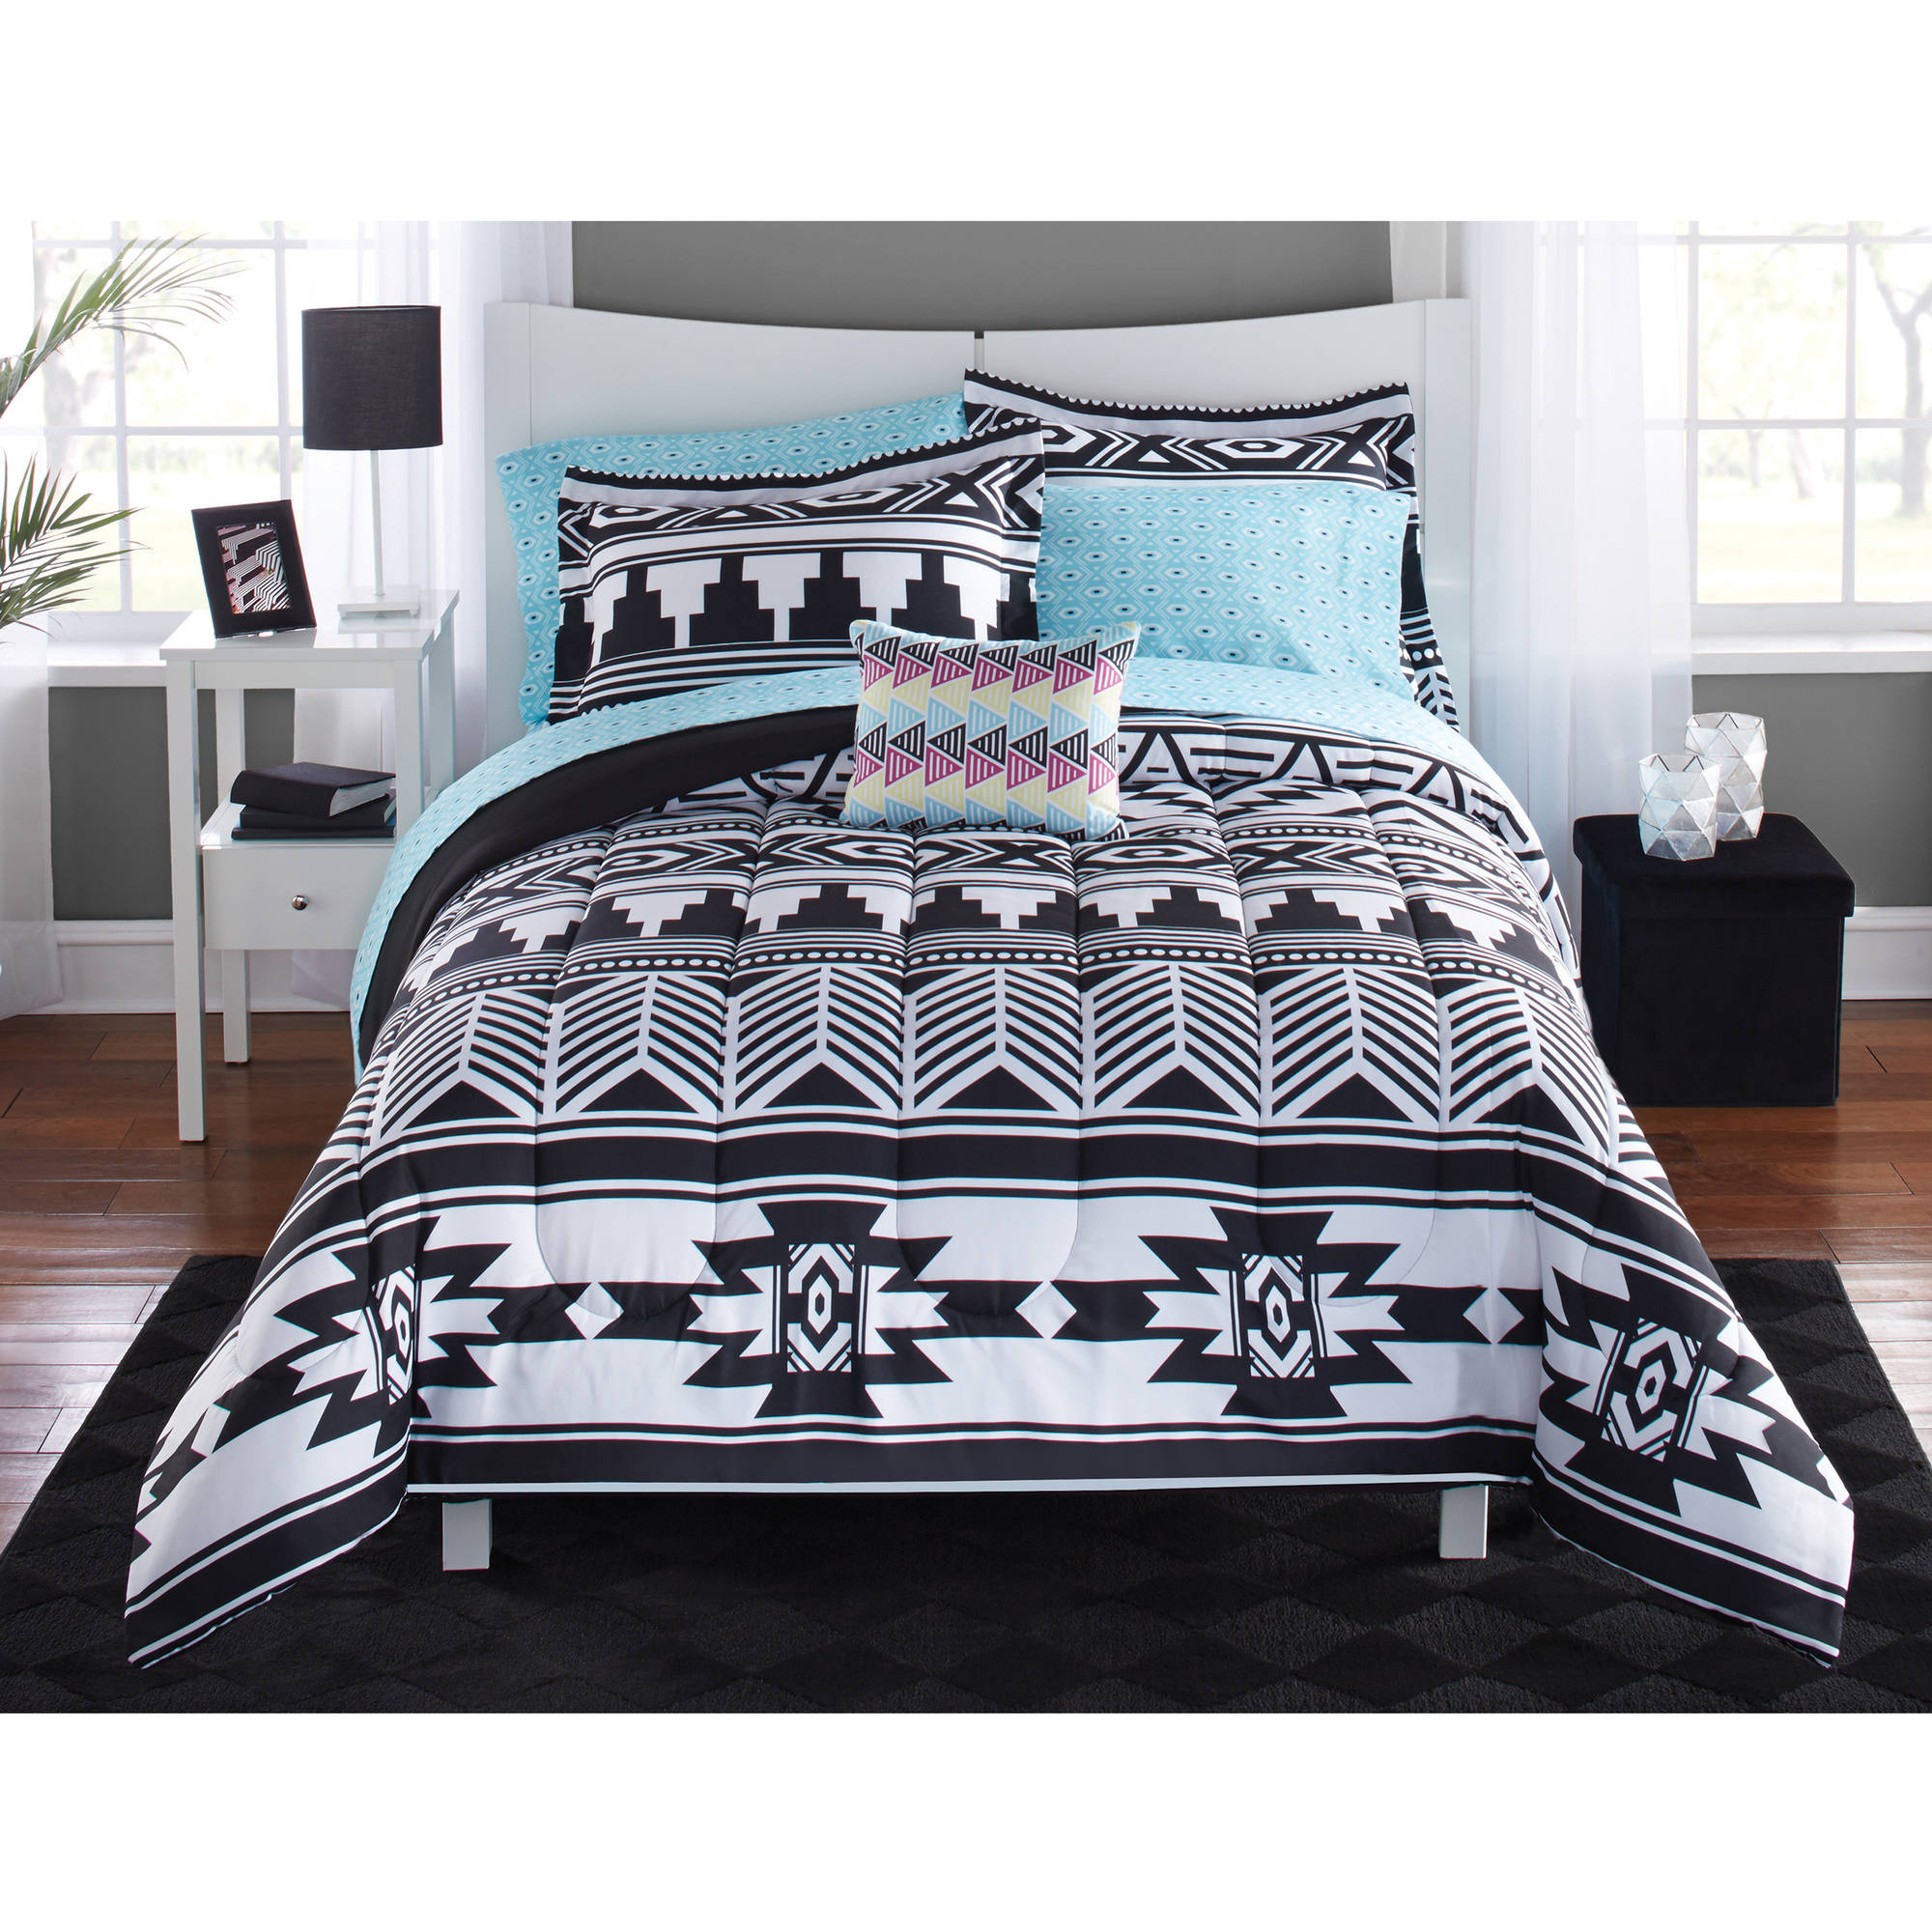 Mainstays tribal black and white bed in a bag bedding set walmart com